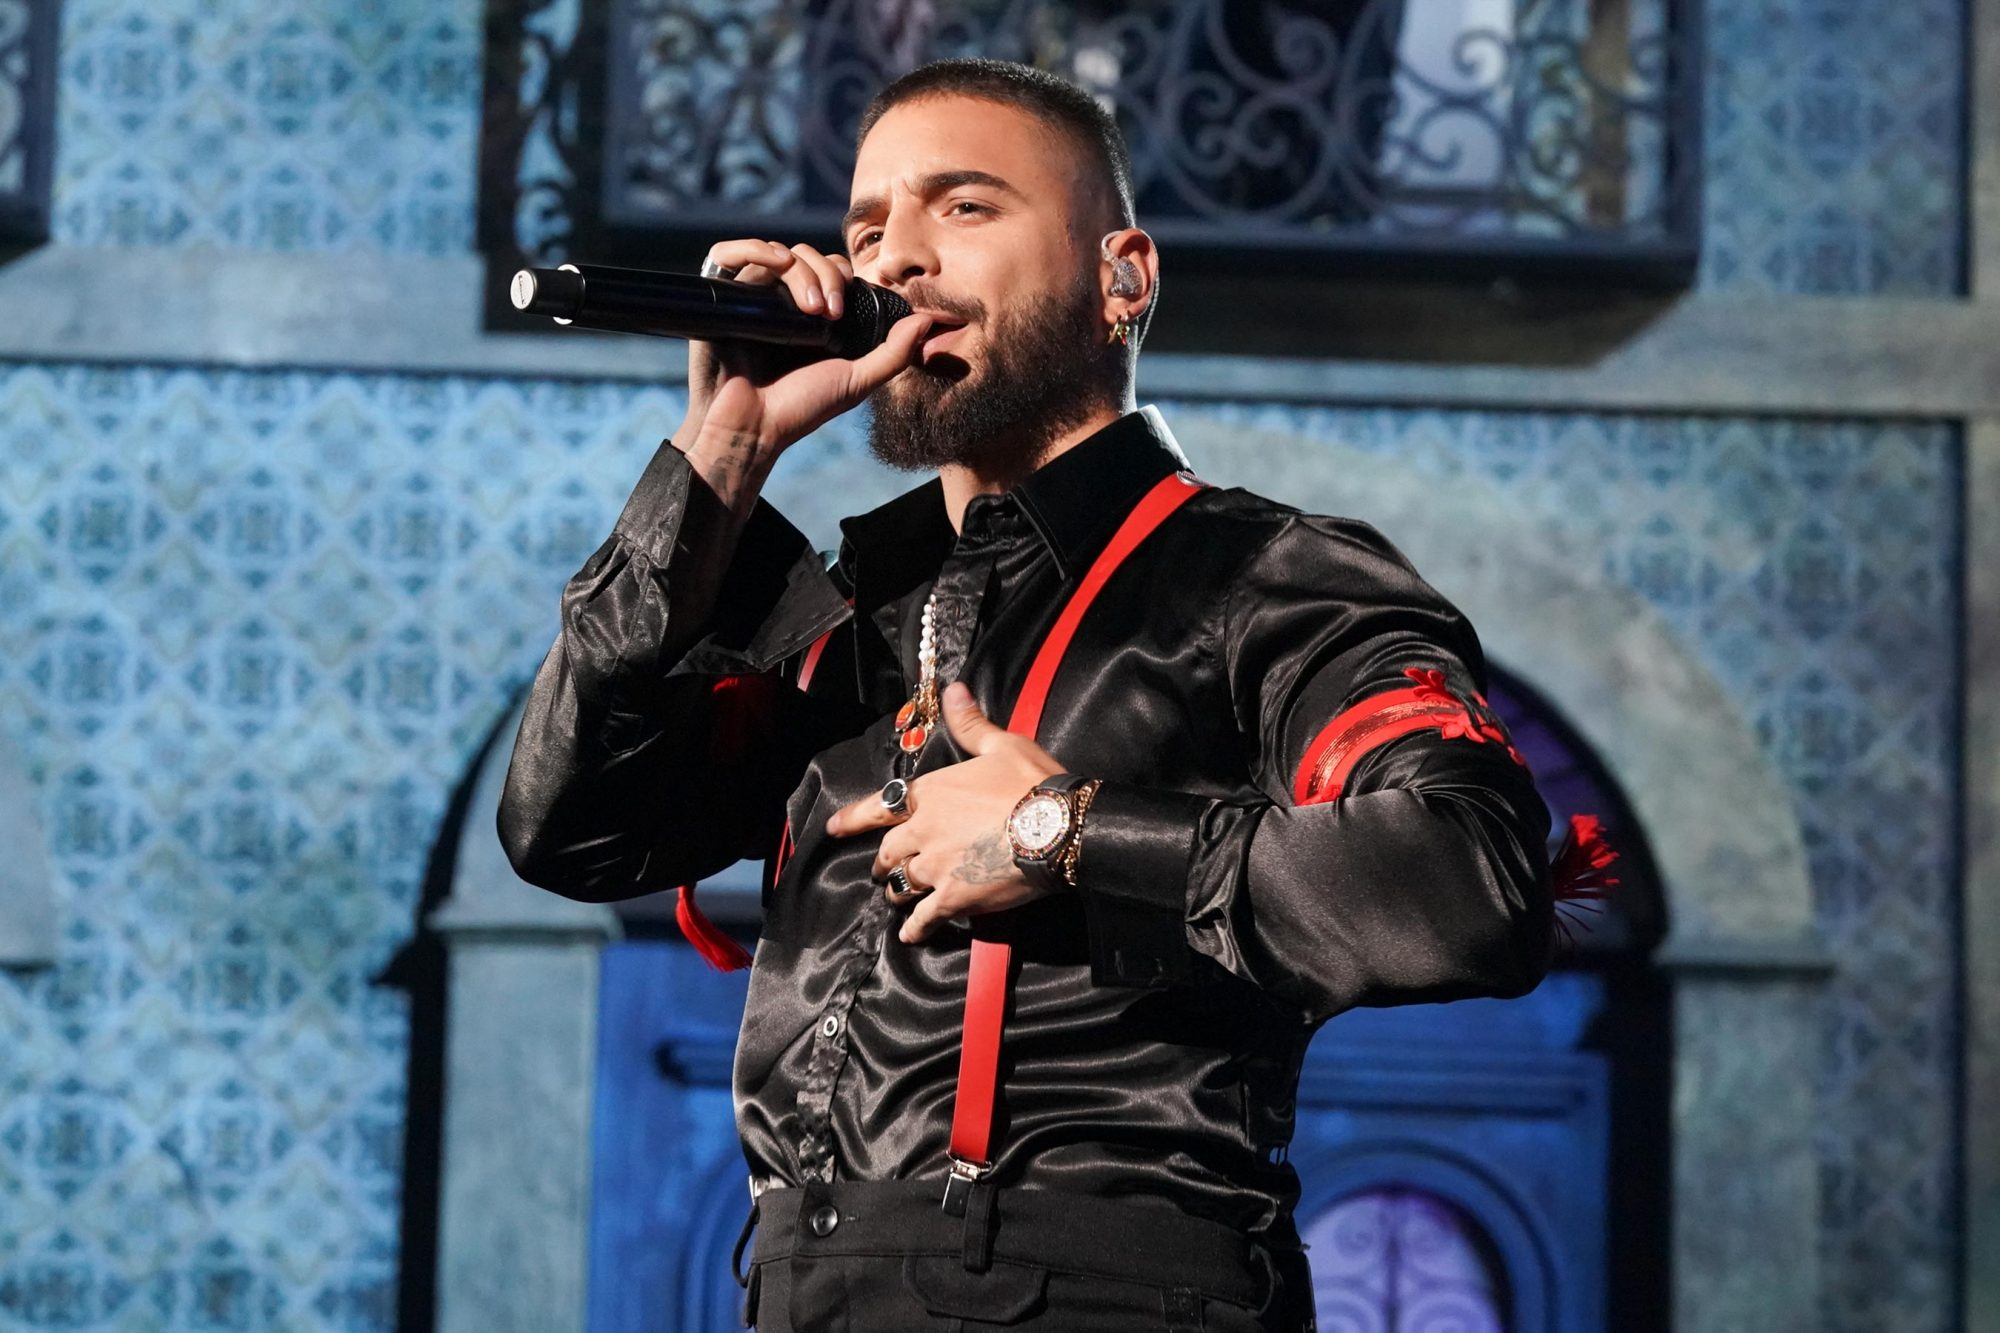 BILLBOARD MUSIC AWARDS -- Show Backstage -- 2019 BBMA at the MGM Grand, Las Vegas, Nevada -- Pictured: Maluma -- (Photo by: Todd Williamson/NBC/NBCU Photo Bank via Getty Images)